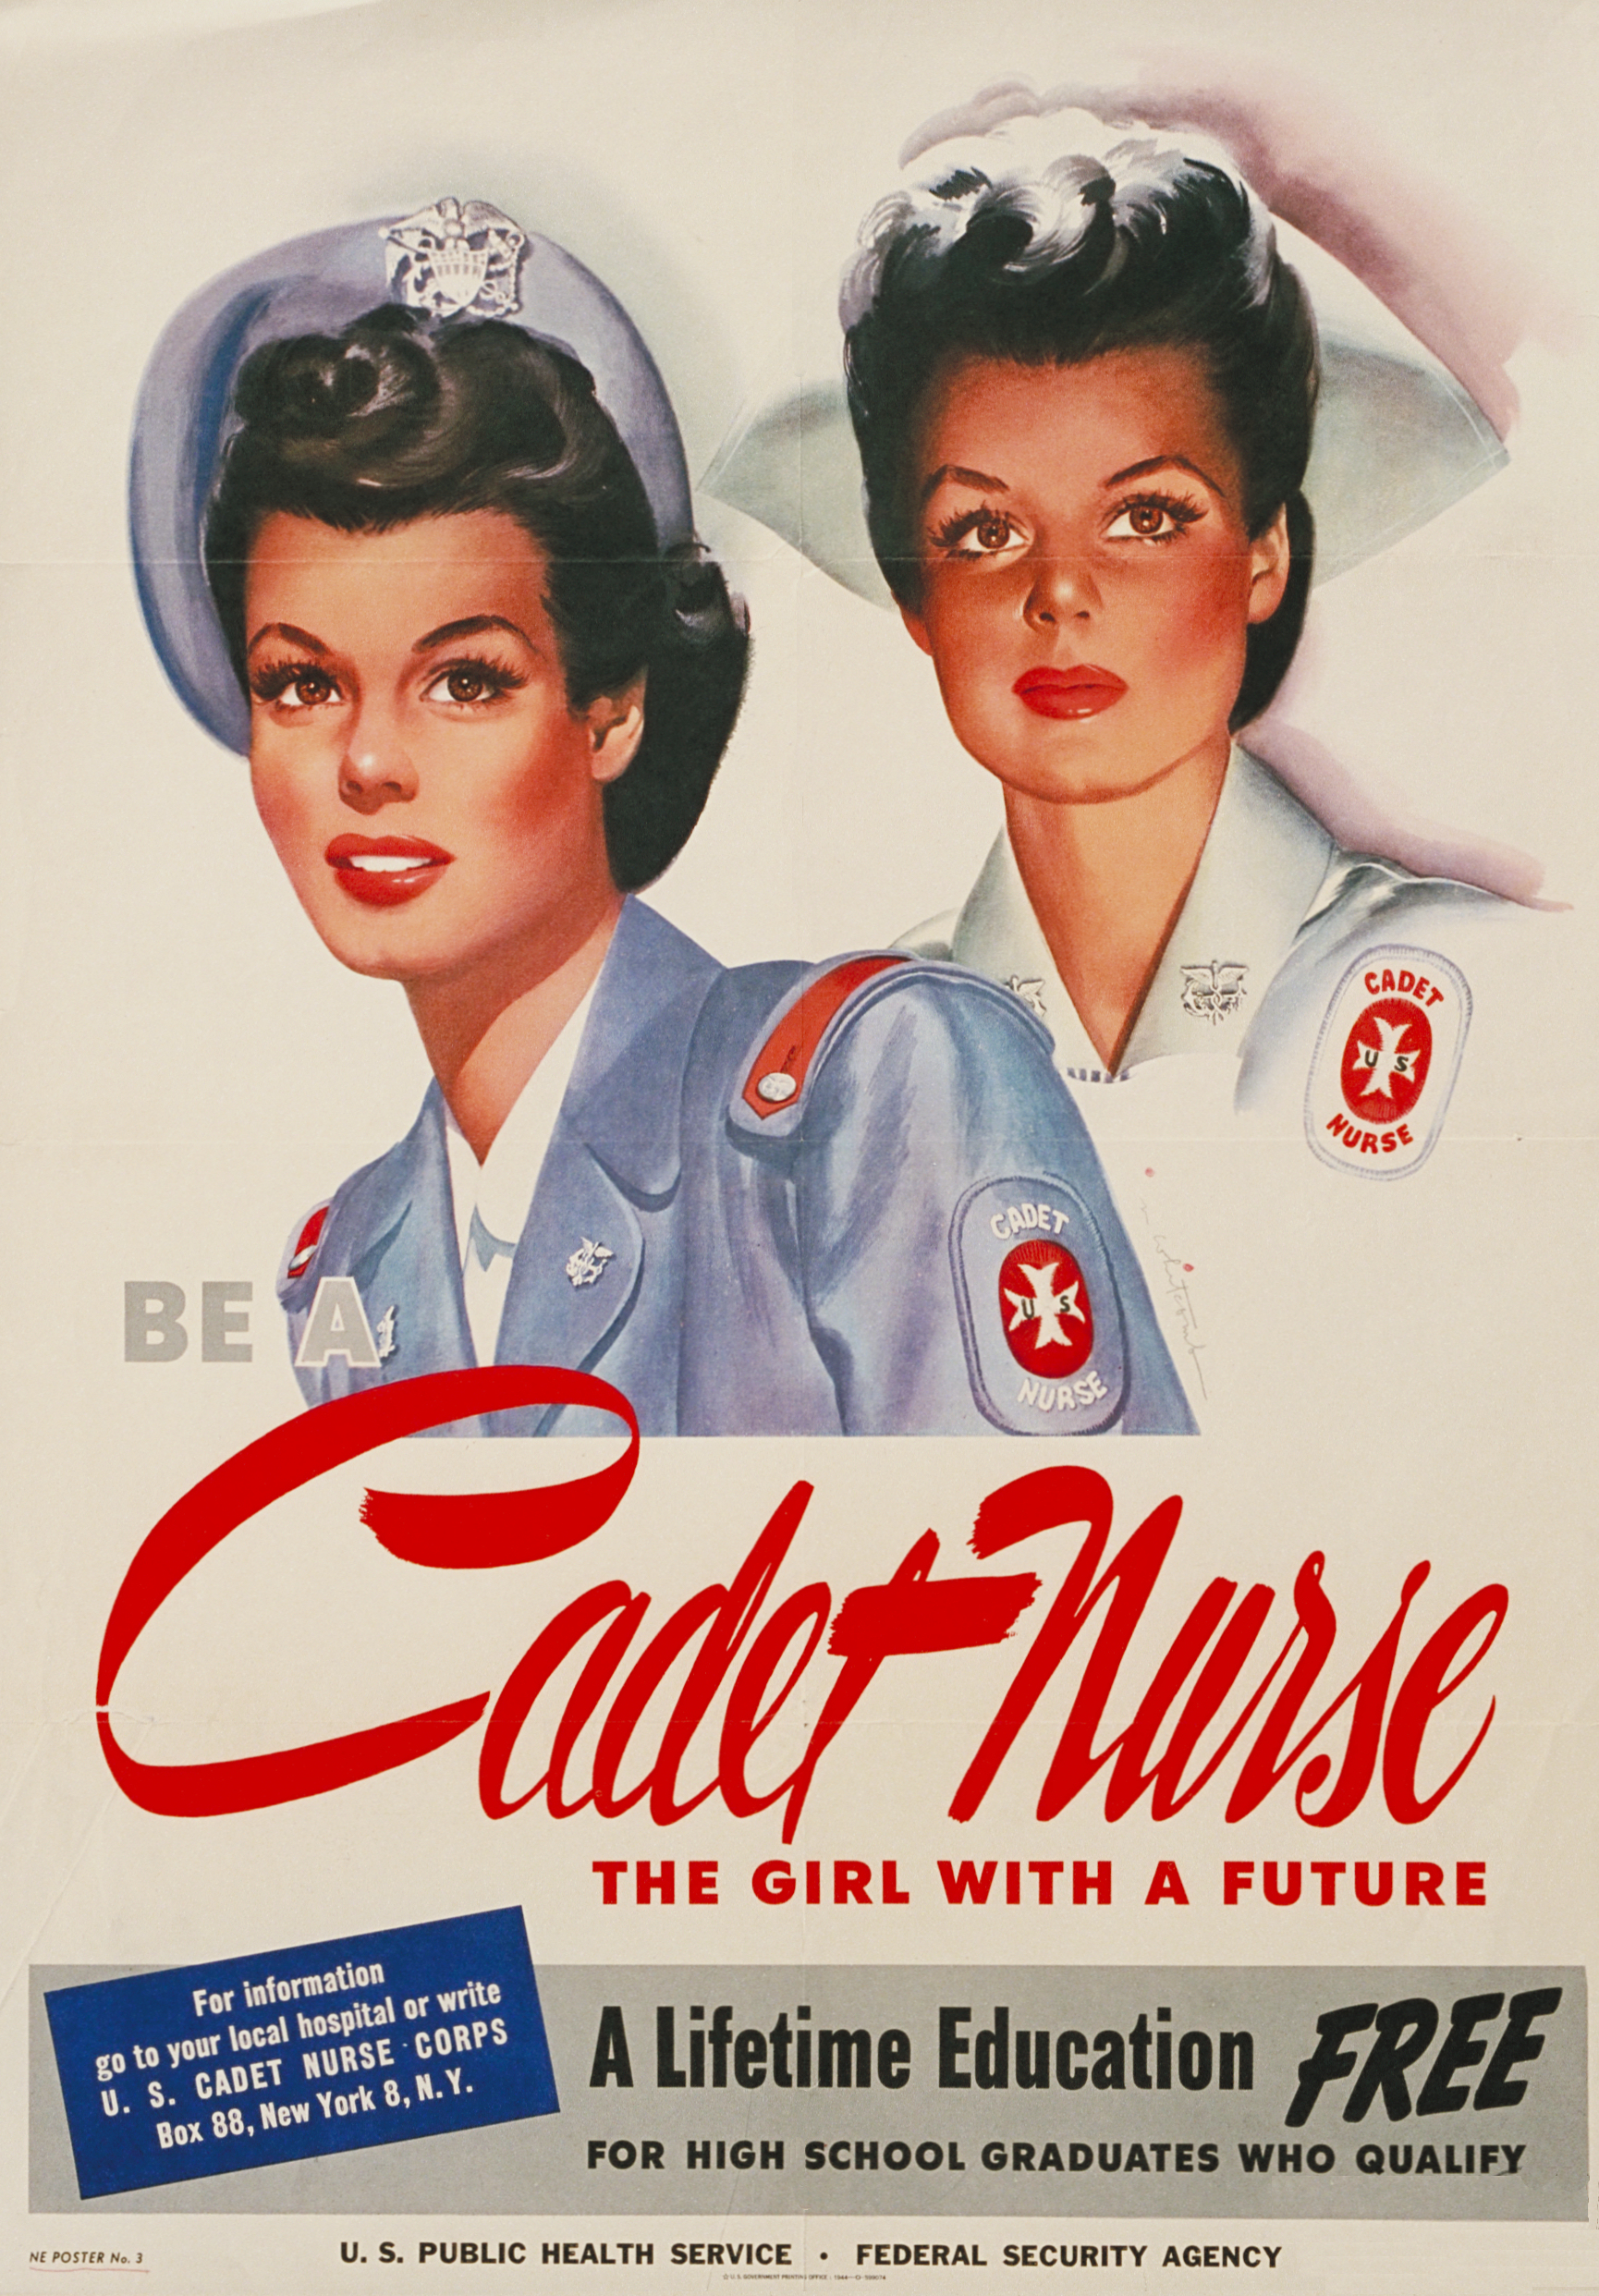 Be a Cadet Nurse: Girl With a Future WWII Recruiting Poster